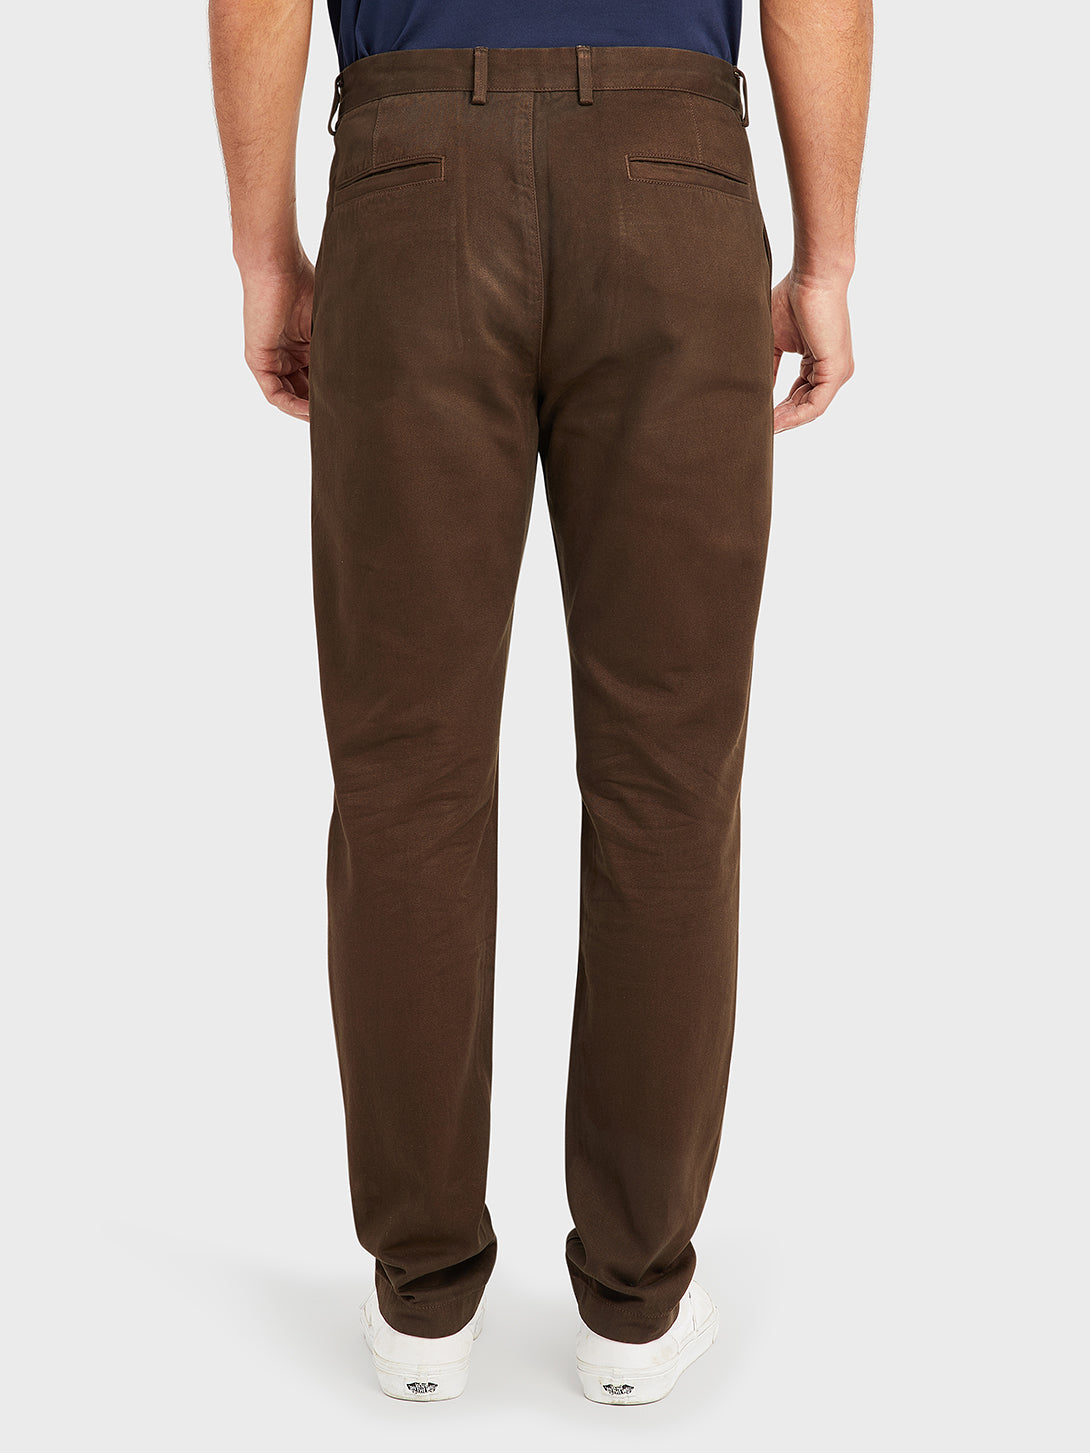 ONS RIDER CHINO Pre-shrunk Cotton Men's Chino for big thighs DK BROWN PANTS black friday deals